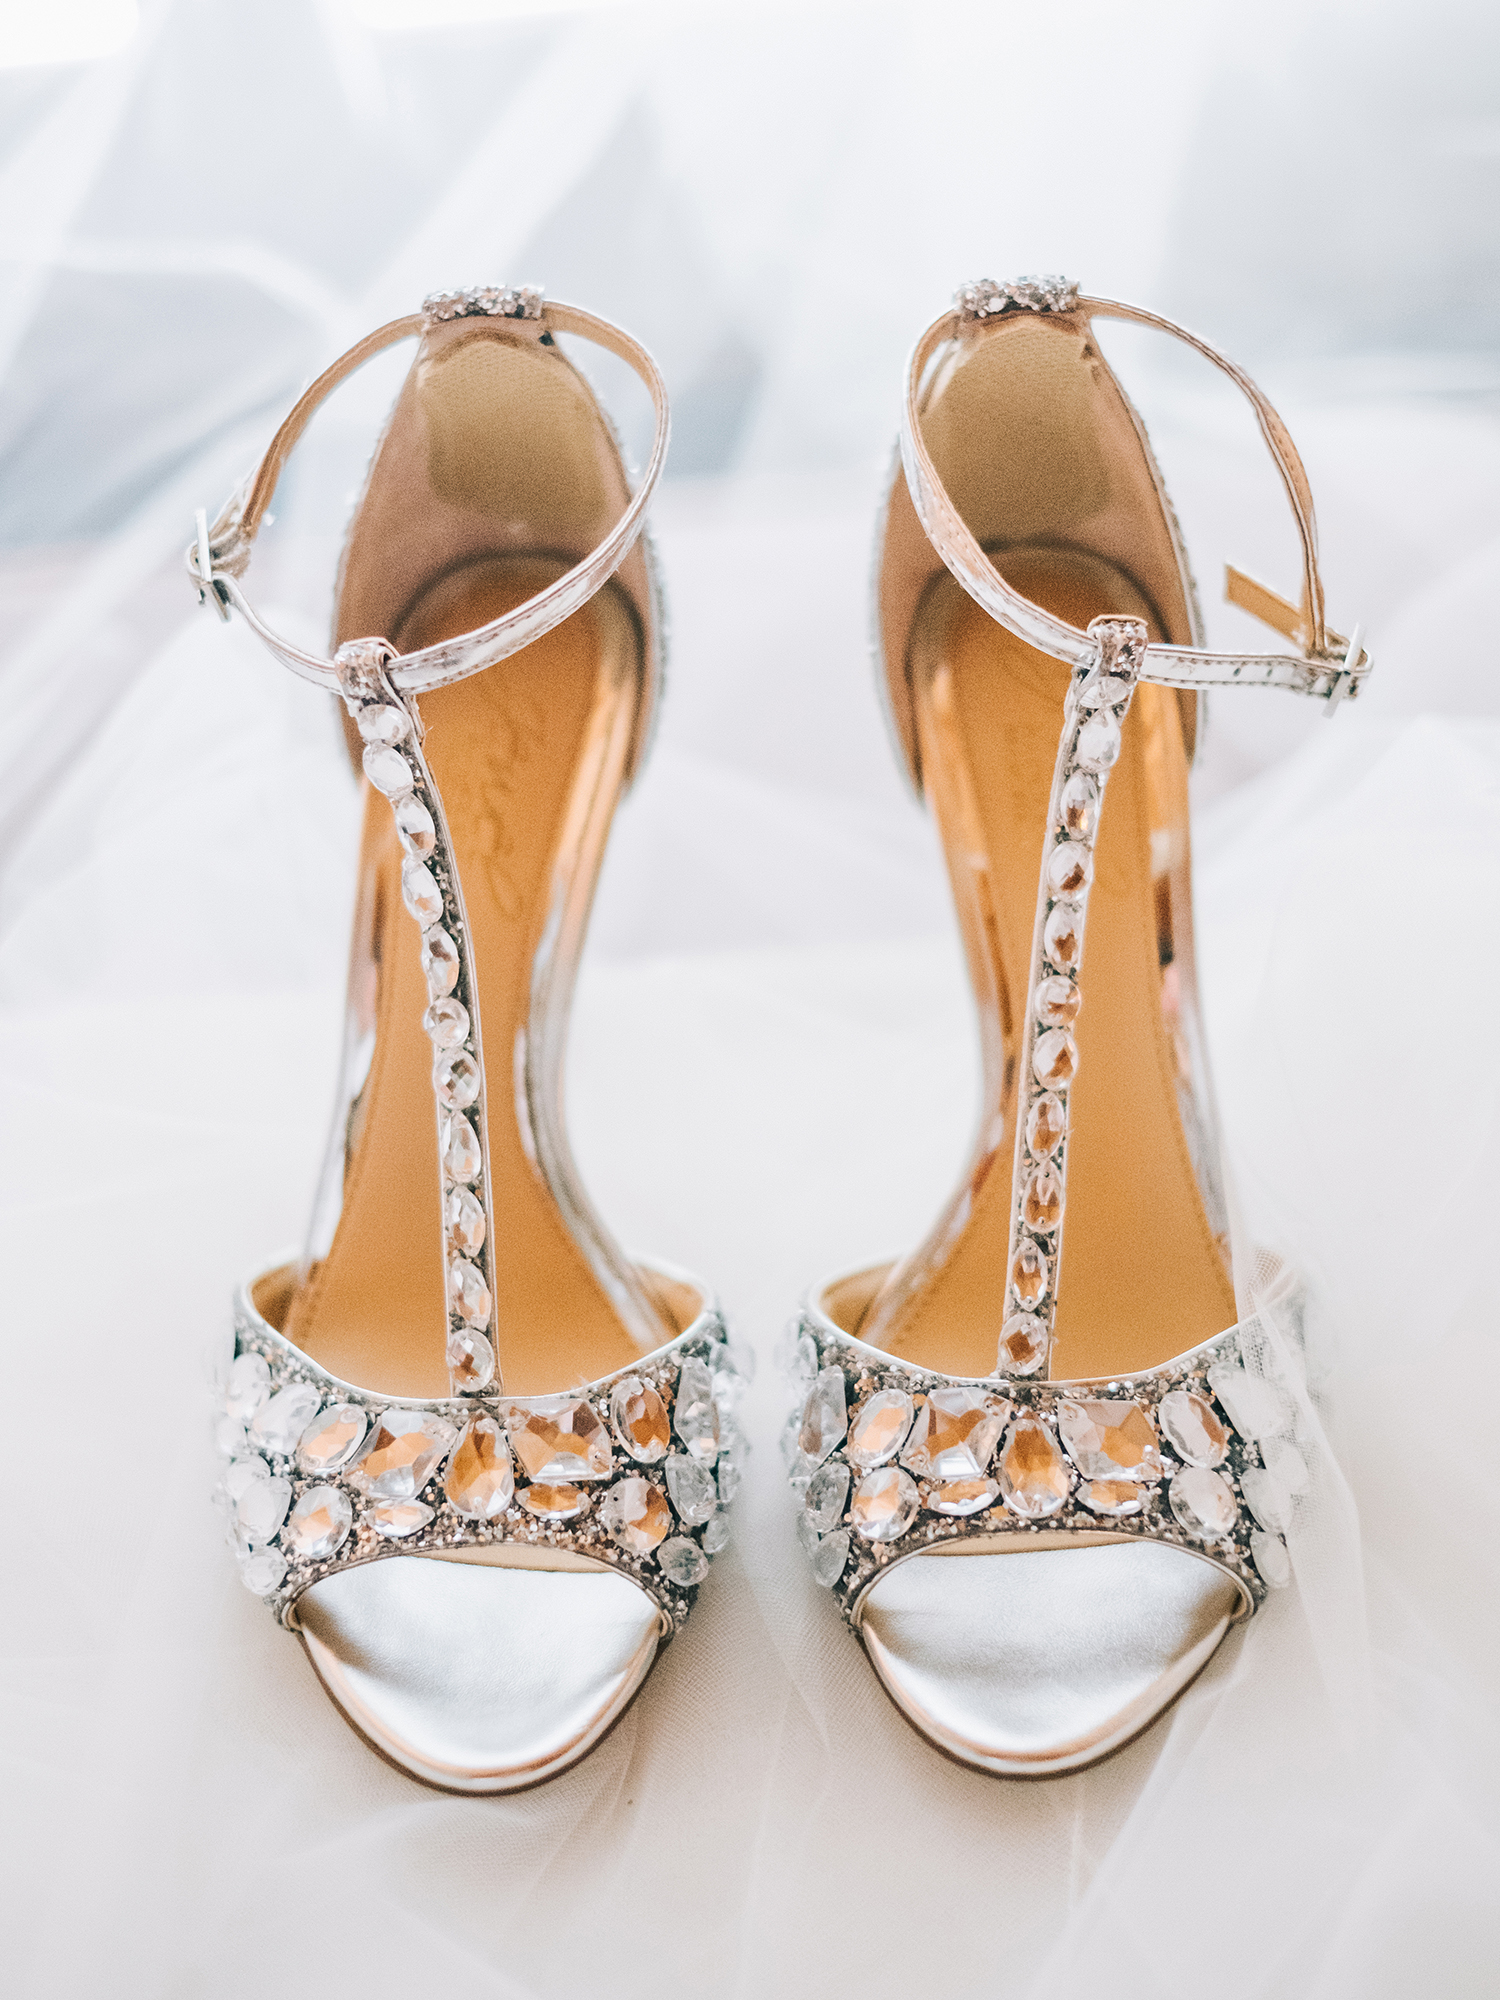 Bejeweled Shoes